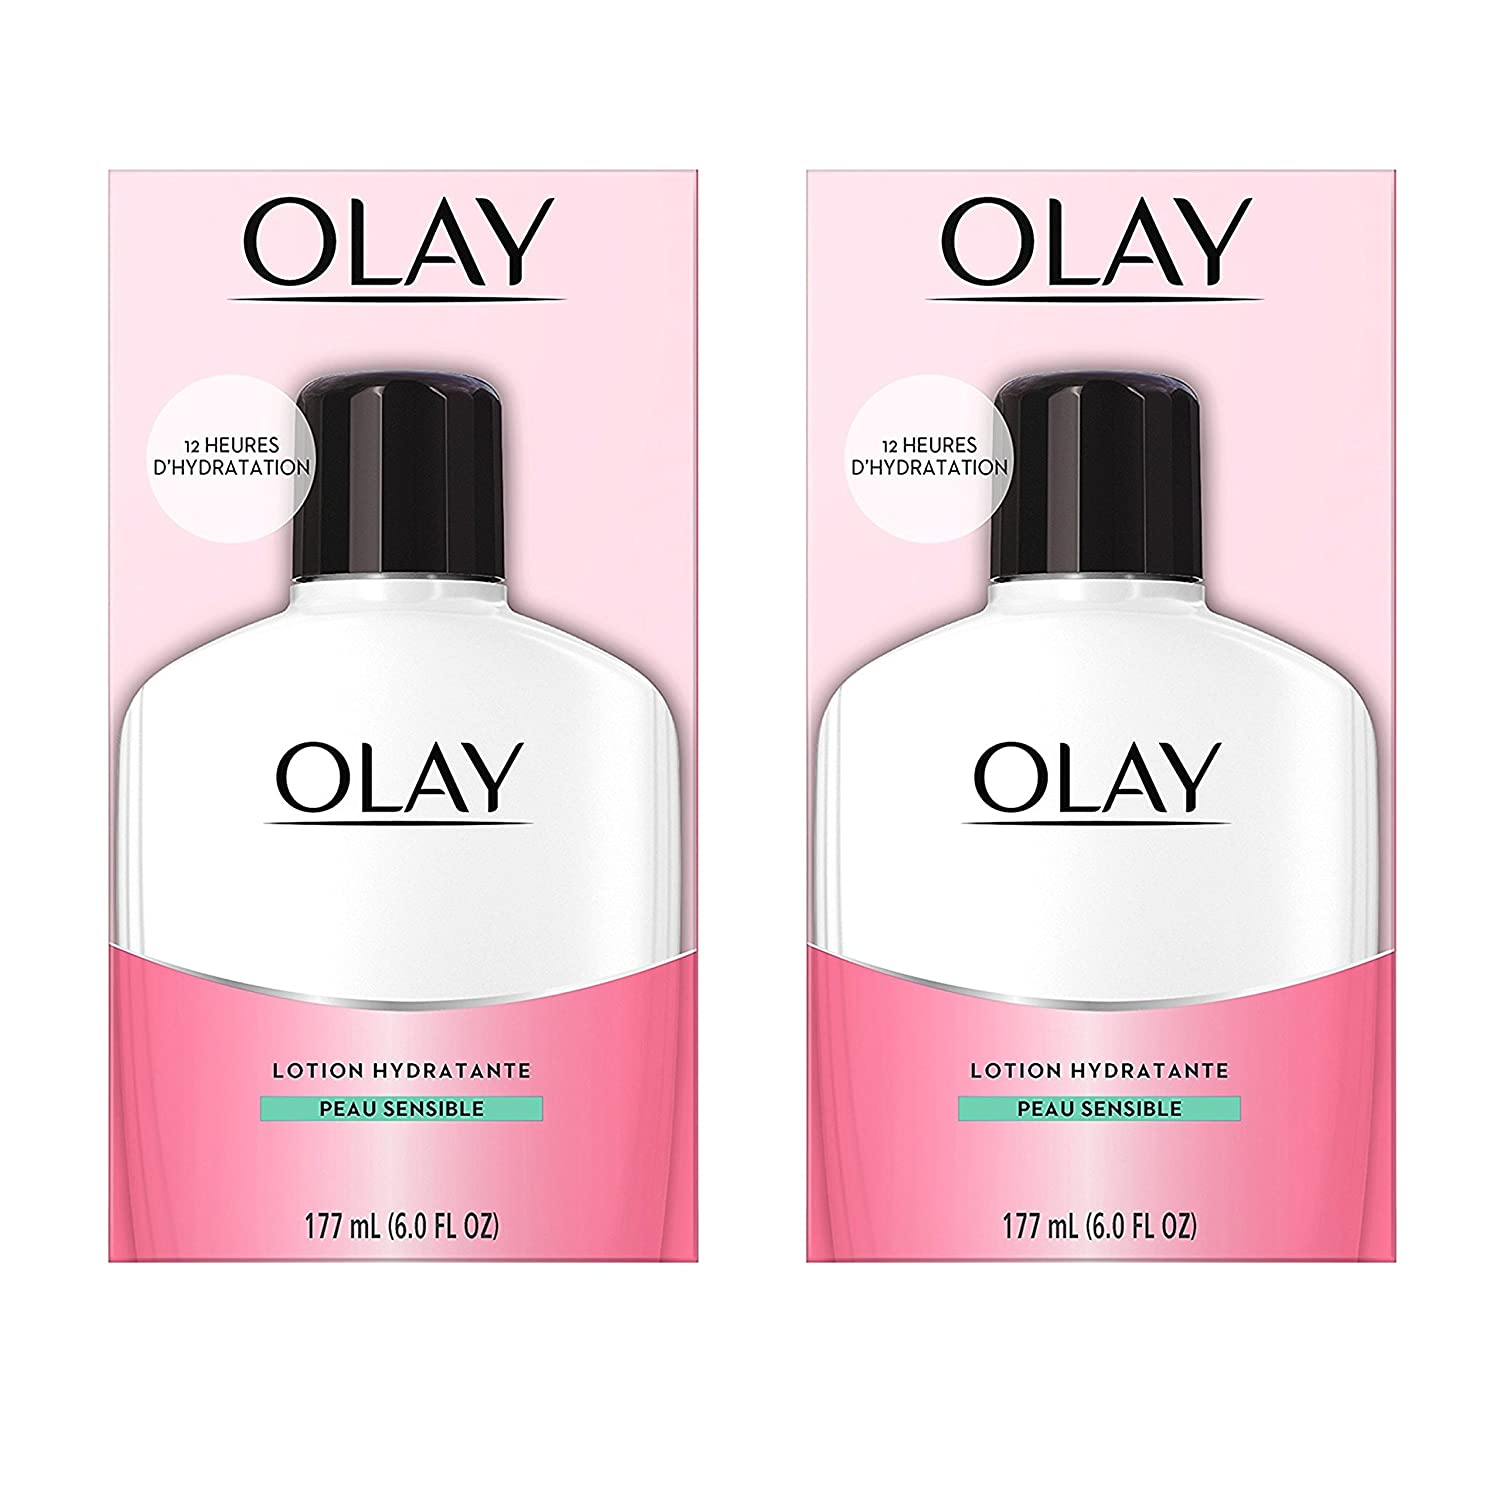 Olay Moisturizing Face Lotion for Sensitive Skin, 177 mL (Pack of 2) NA